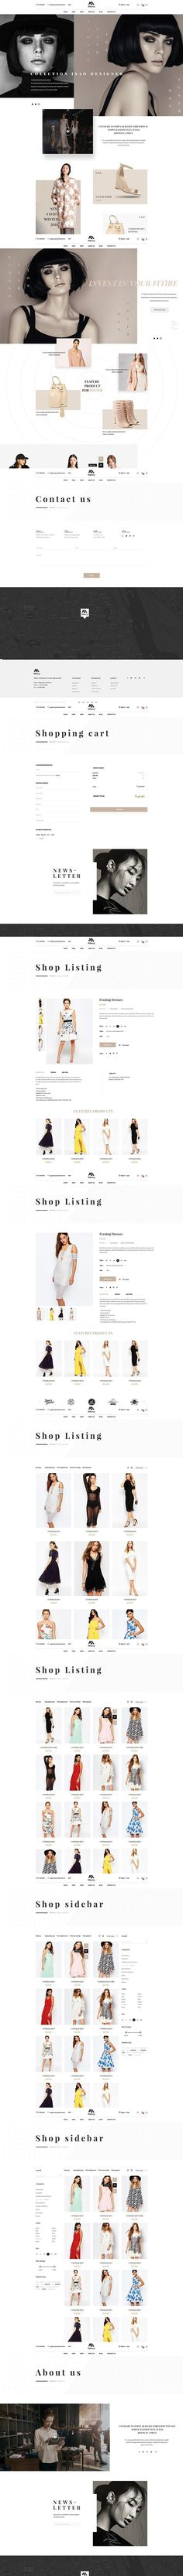 Mercy - Stunning eCommerce PSD. Website Templates